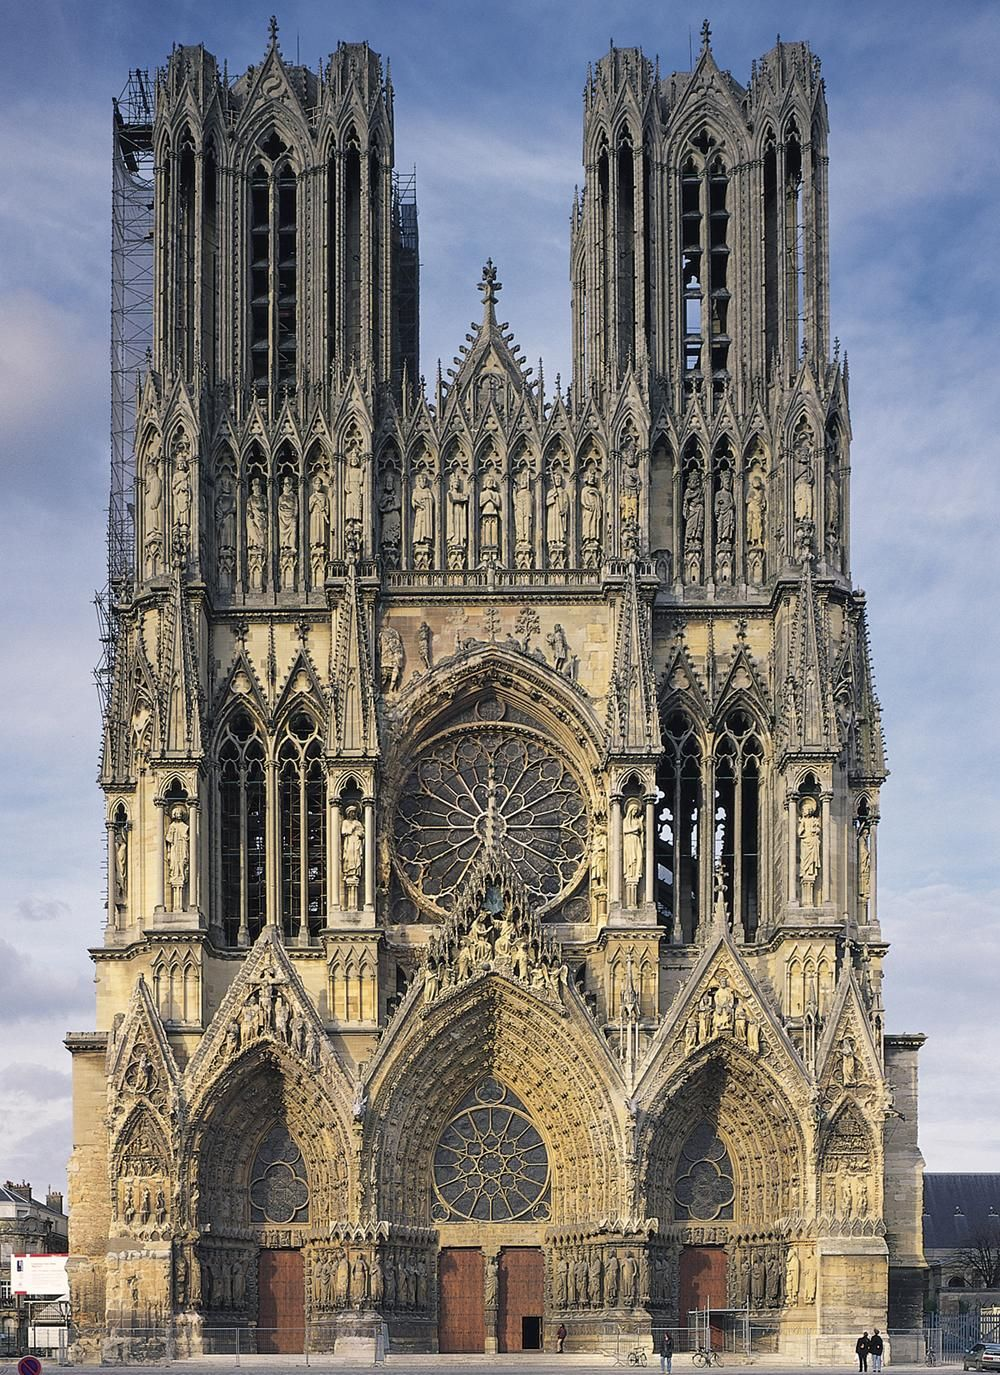 Exceptional The Monumental 81 Metre Tall Façade Of Reims Cathedral, France, Constructed  Inu2026